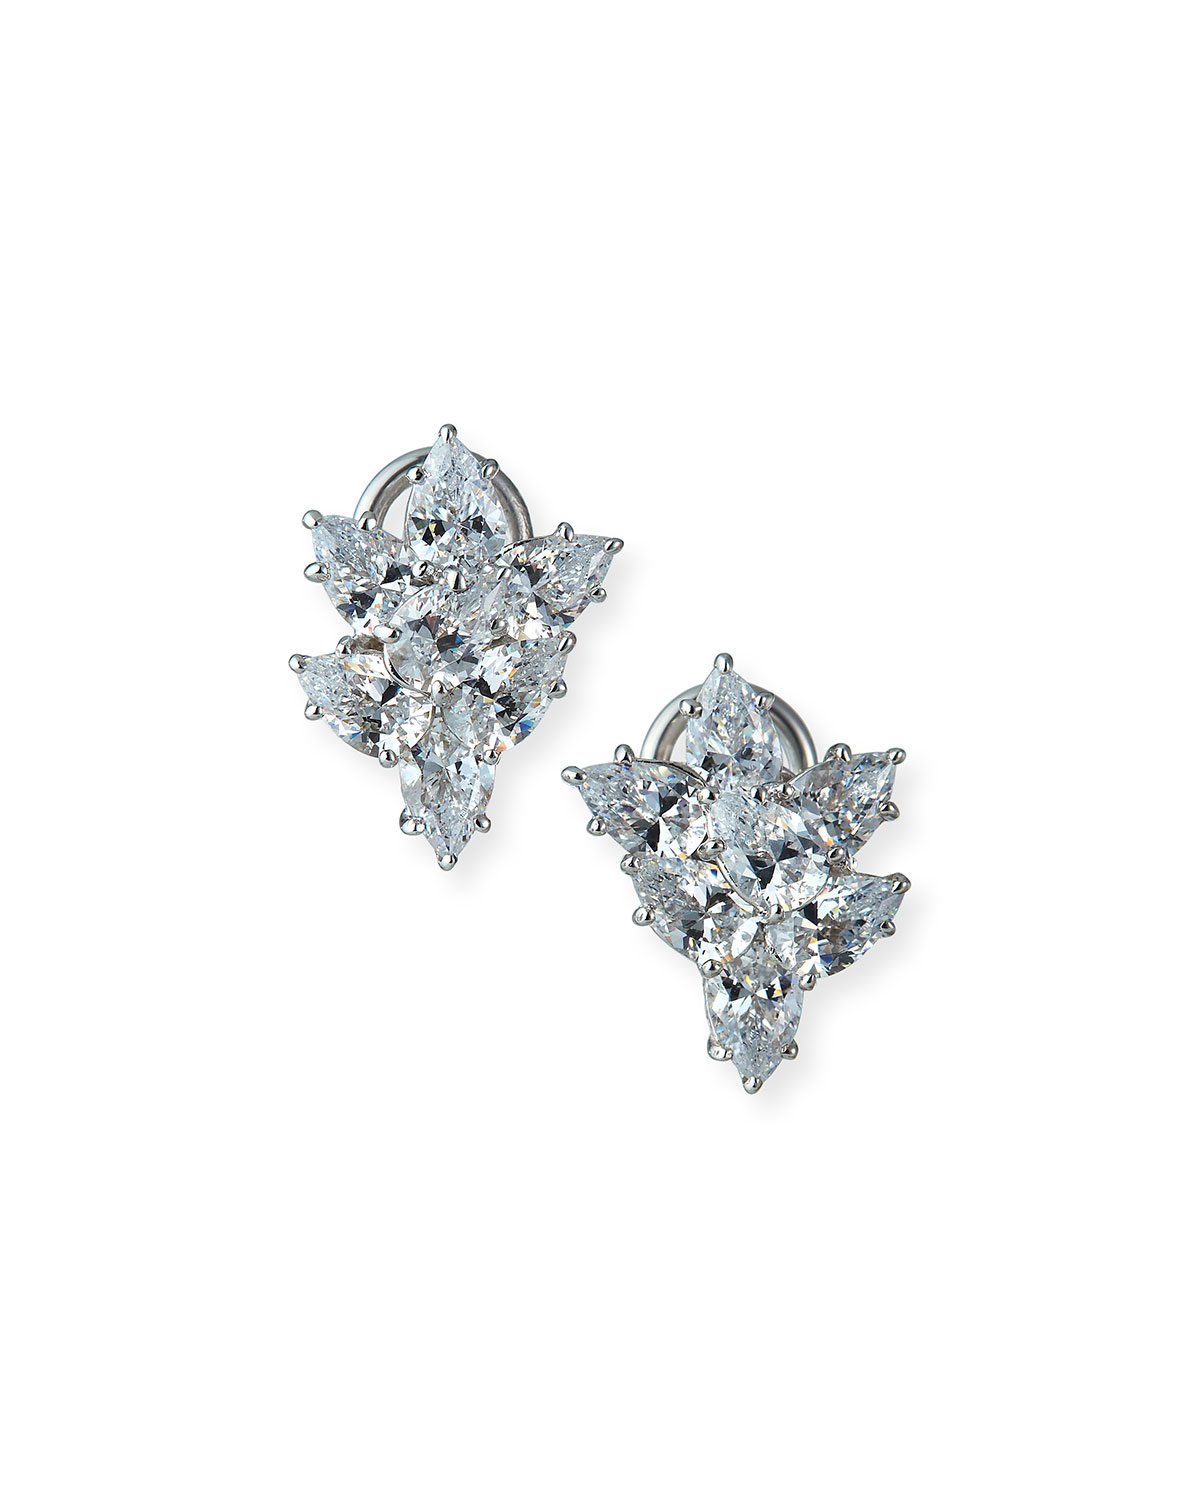 Small Cubic Zirconia Cluster Earrings